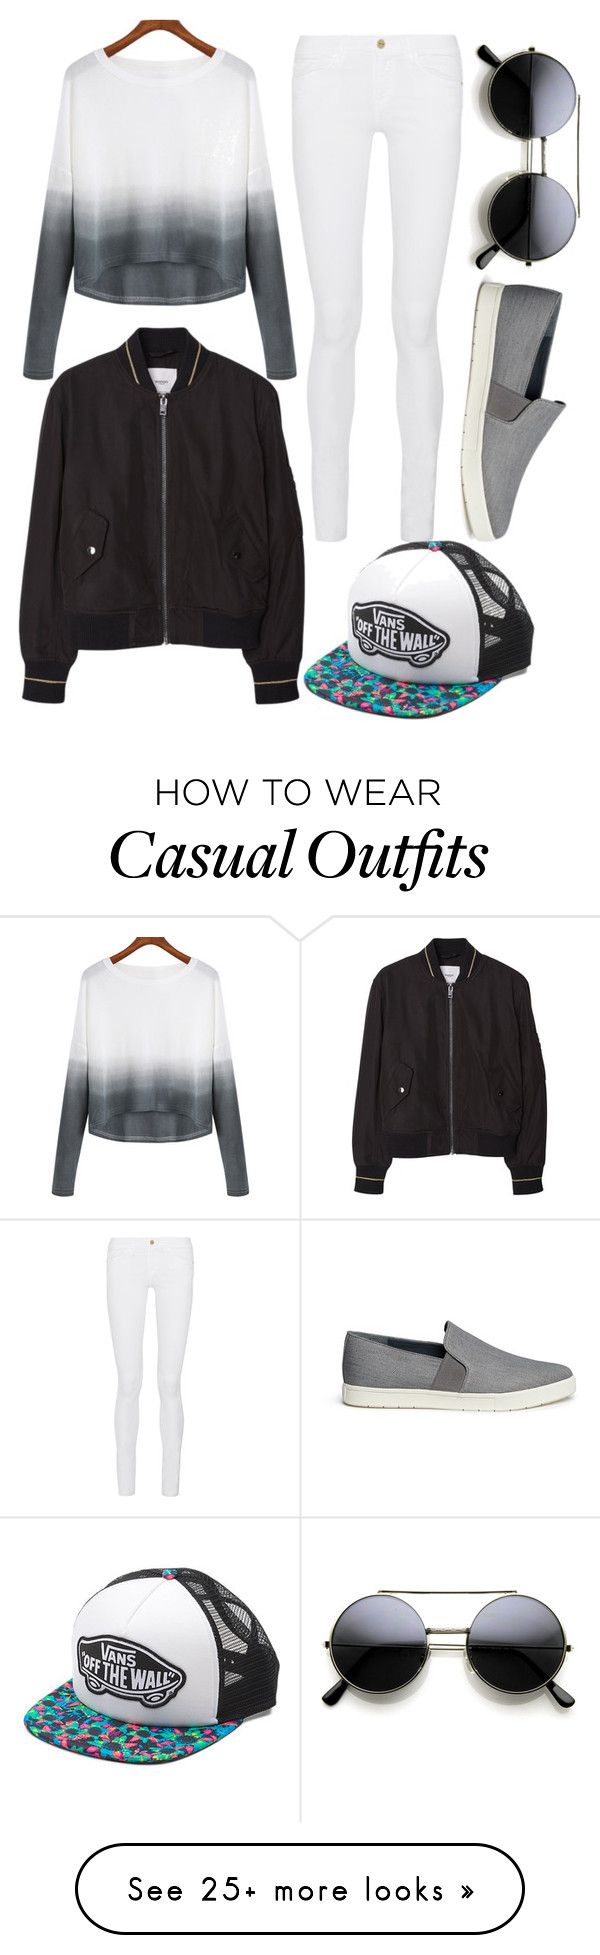 """""""casual and cool"""" by ruthjauregui on Polyvore featuring Vince, MANGO, Frame Denim, Vans, women's clothing, women's fashion, women, female, woman and misses"""